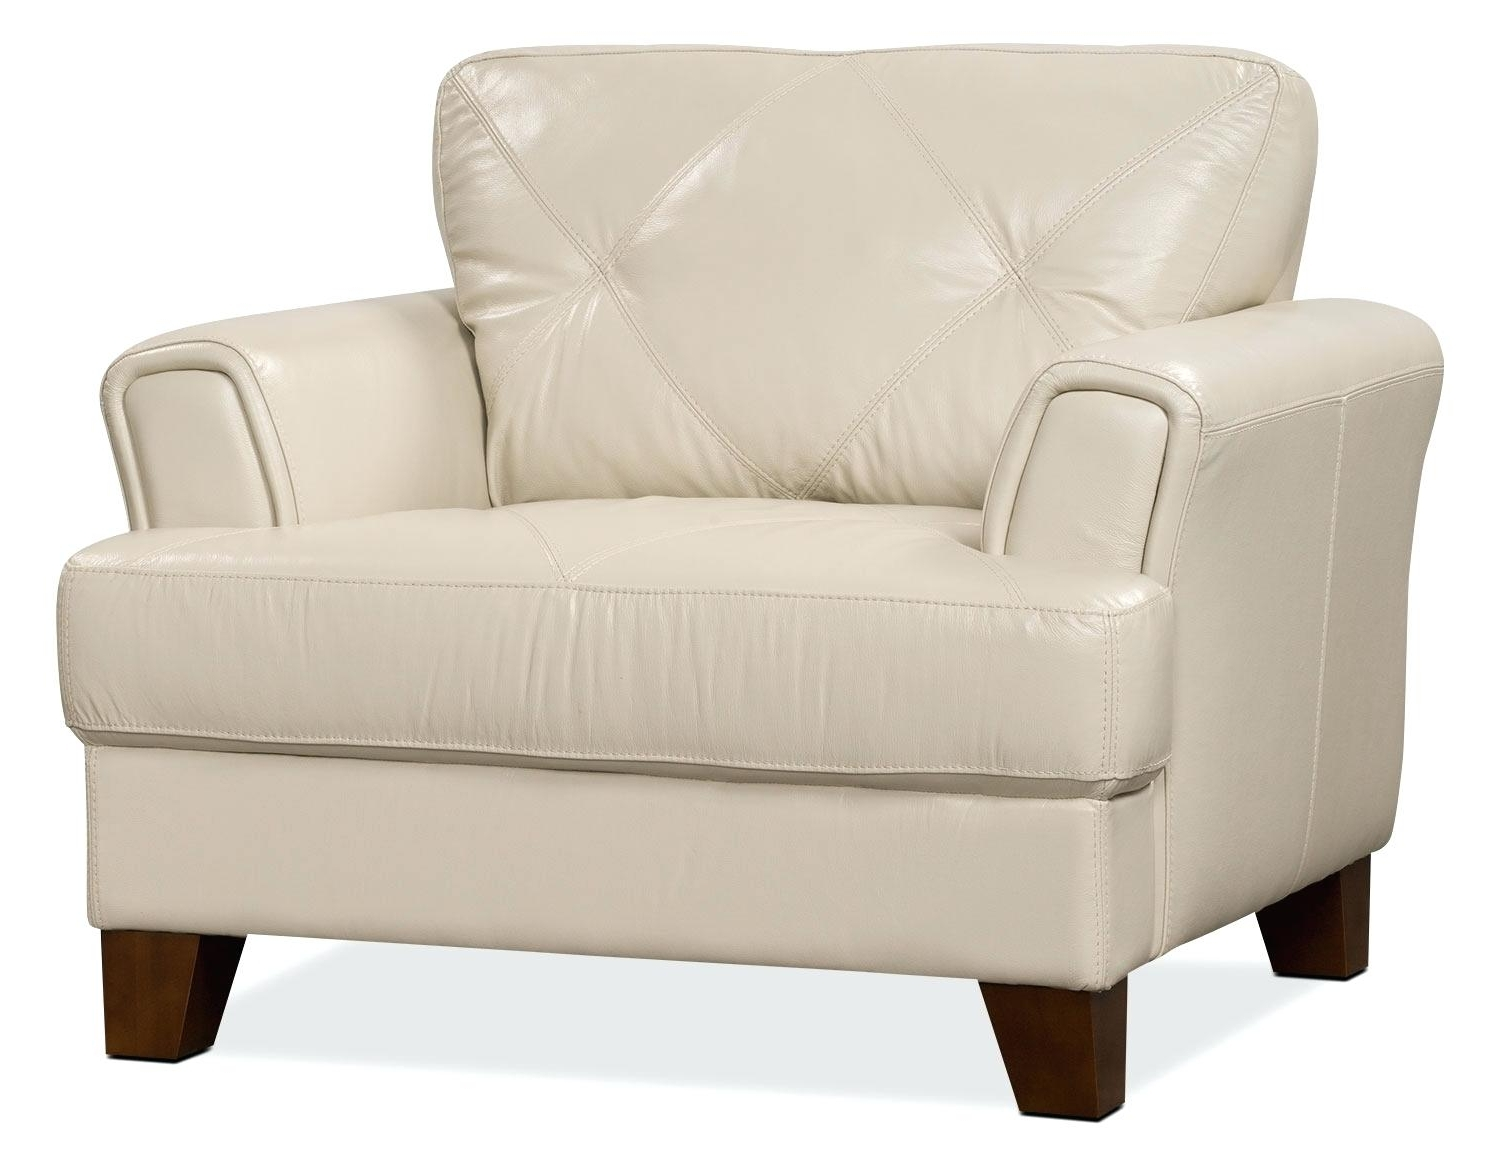 Preferred Cindy Crawford Leather Furniture Vita Genuine Chair Smoke The Throughout Cindy Crawford Sofas (View 10 of 20)